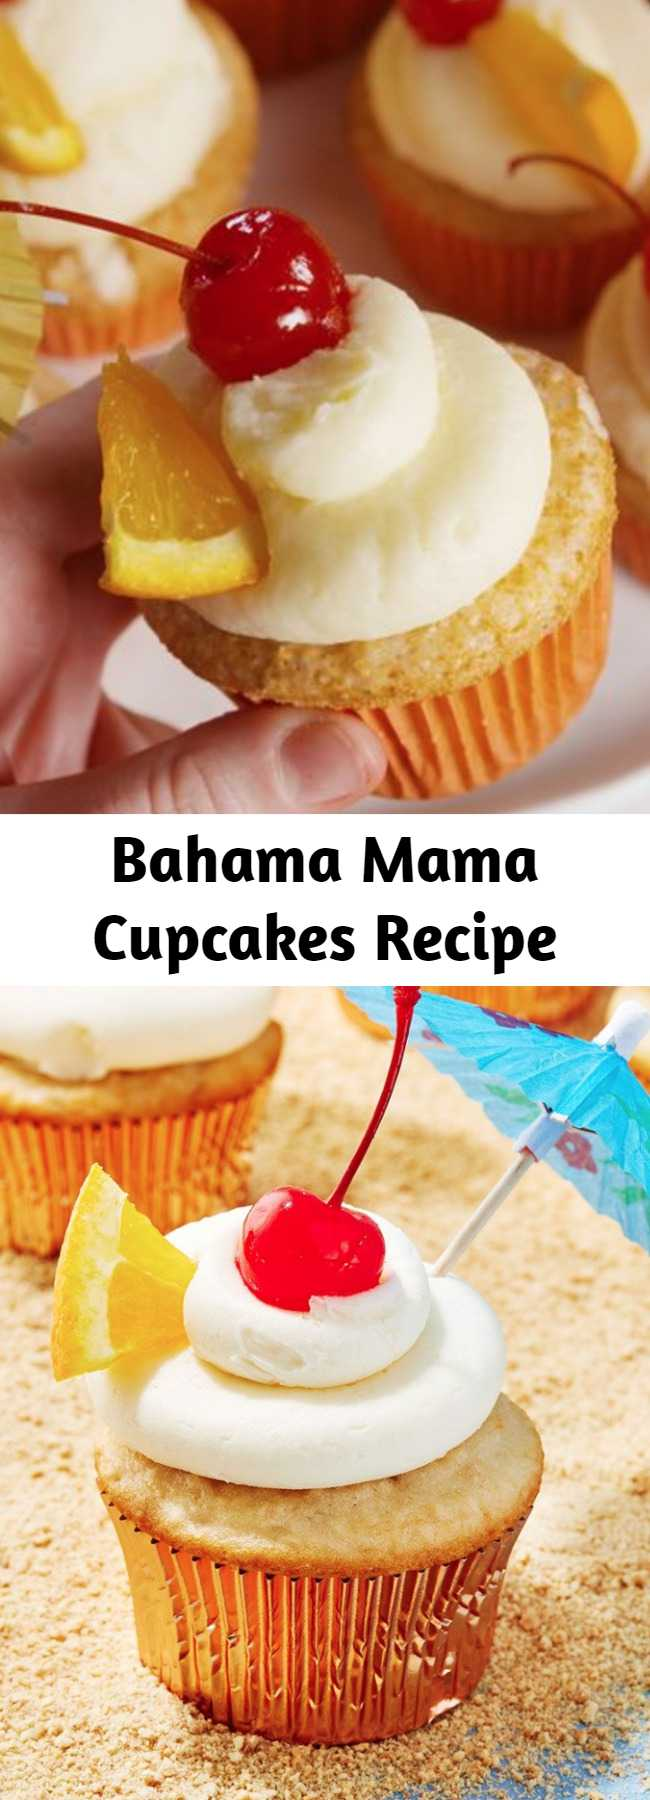 Bahama Mama Cupcakes Recipe - Bahama Mama cupcakes turn your favorite summertime drink into the perfect dessert. One bite and you'll feel like you've had the beach vacation of your dreams. #food #easyrecipe #baking #cupcakes #dessert